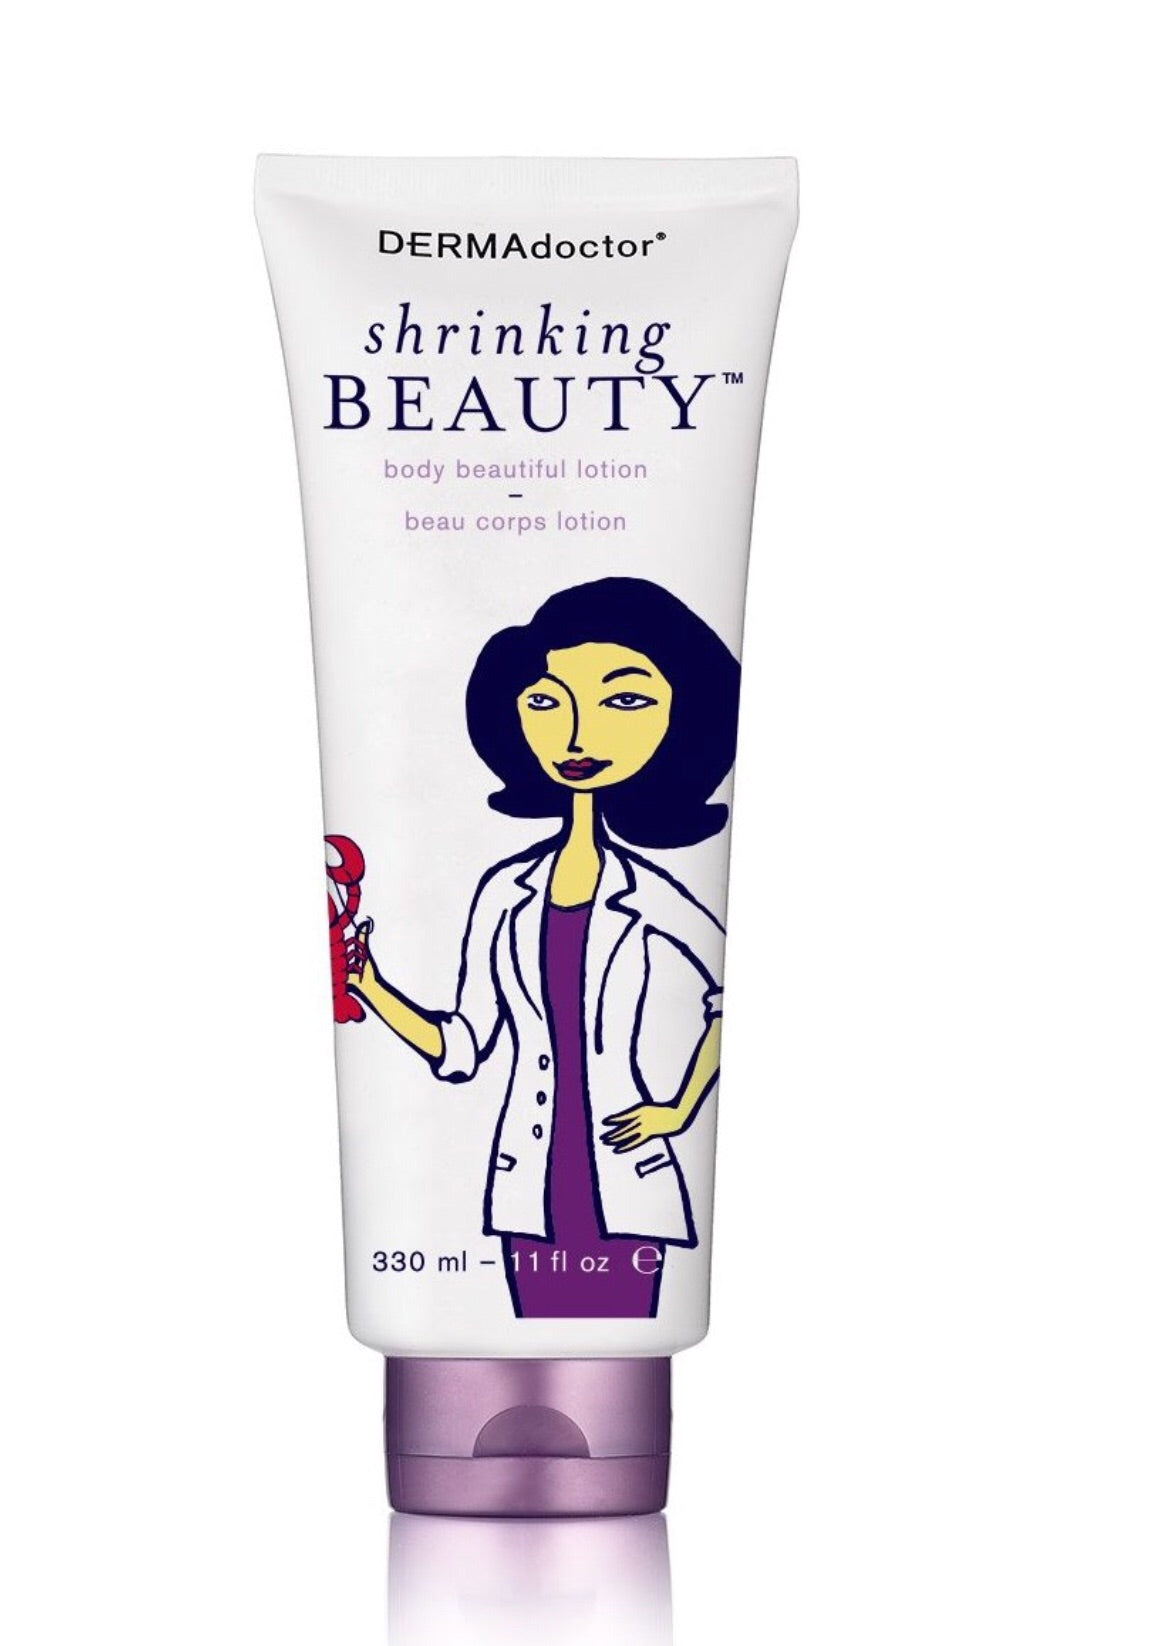 DERMADoctor Shrinking Beauty Body Beautiful Lotion, 11 oz.